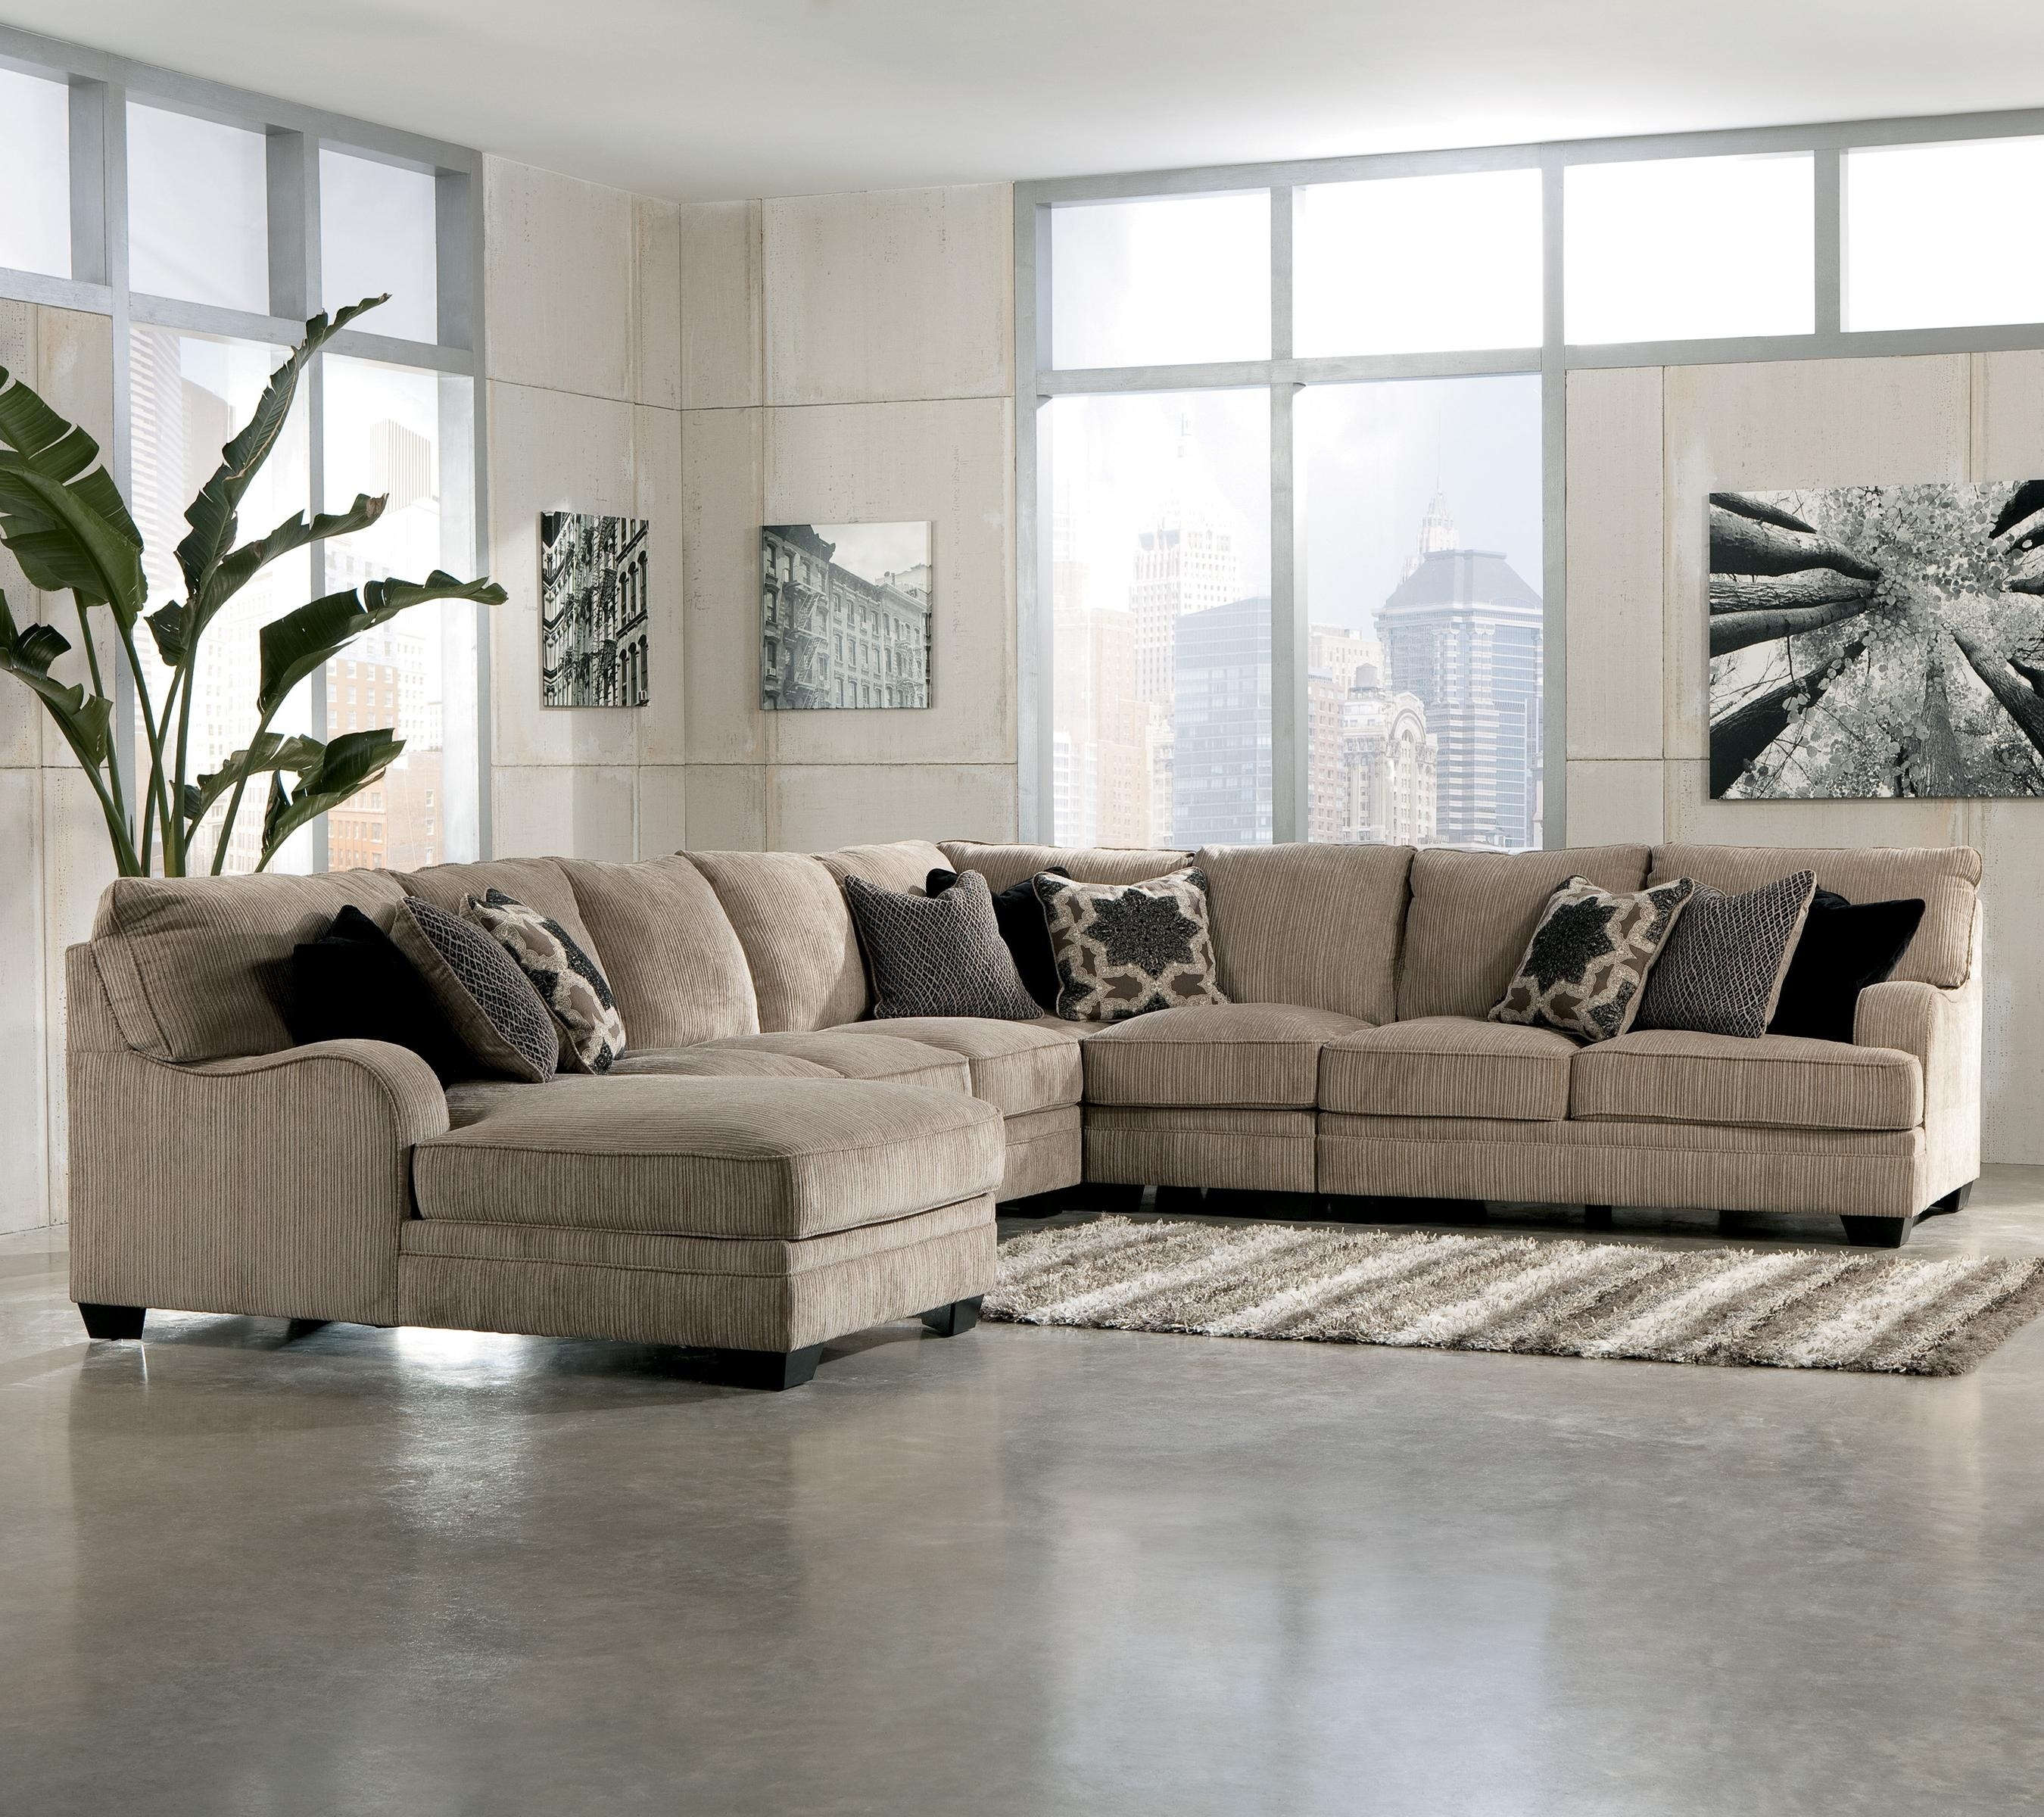 Signature Designashley Katisha – Platinum 5 Piece Sectional Sofa Inside St Cloud Mn Sectional Sofas (Image 9 of 10)